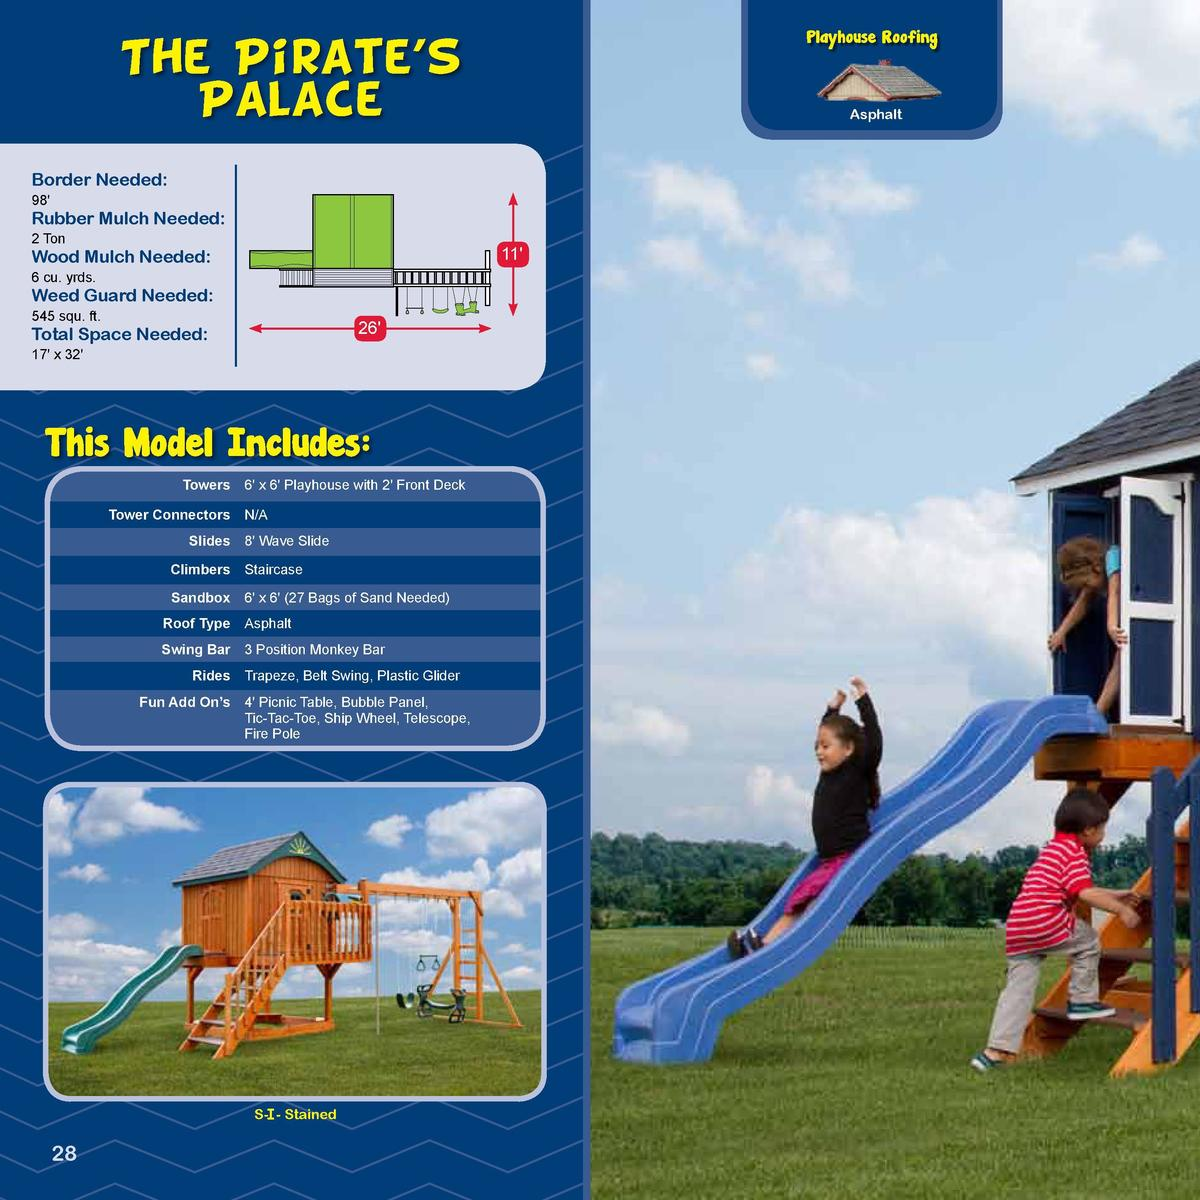 Playhouse Roofing  The Pirate   s Palace  PIRATE SHIP -SERIES-  Asphalt  Border Needed   98   Rubber Mulch Needed   2 Ton ...